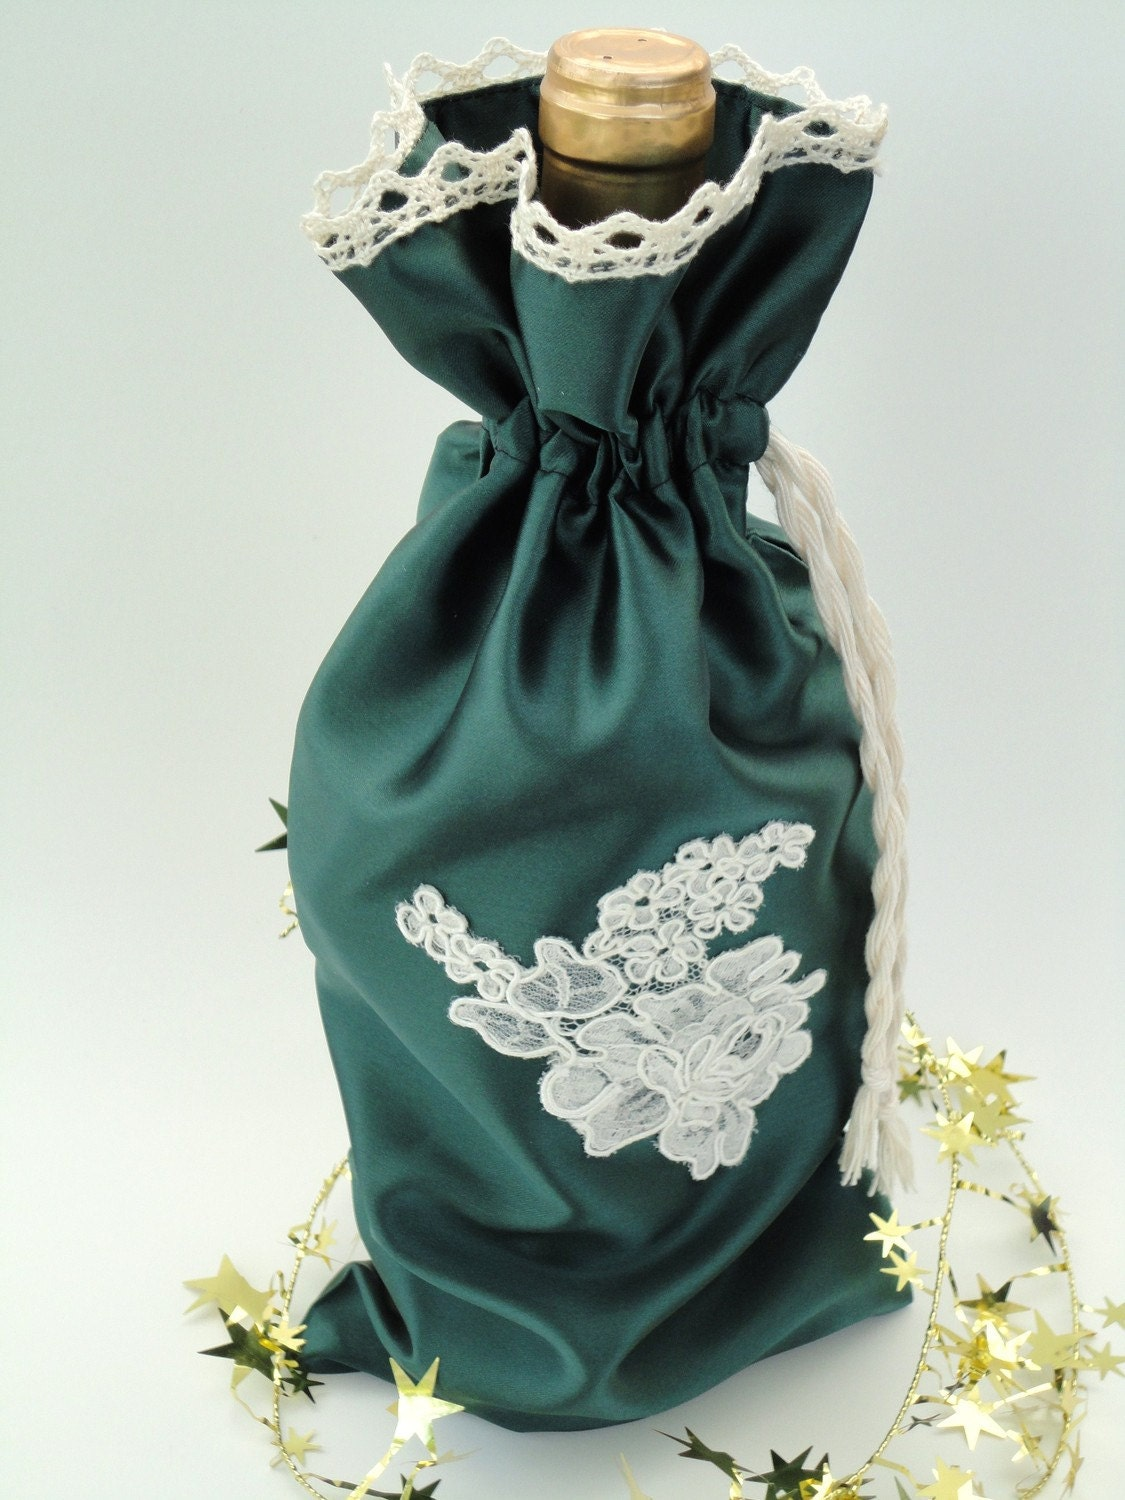 Enter to win this gorgeous green satin and ivory lace wine bag!